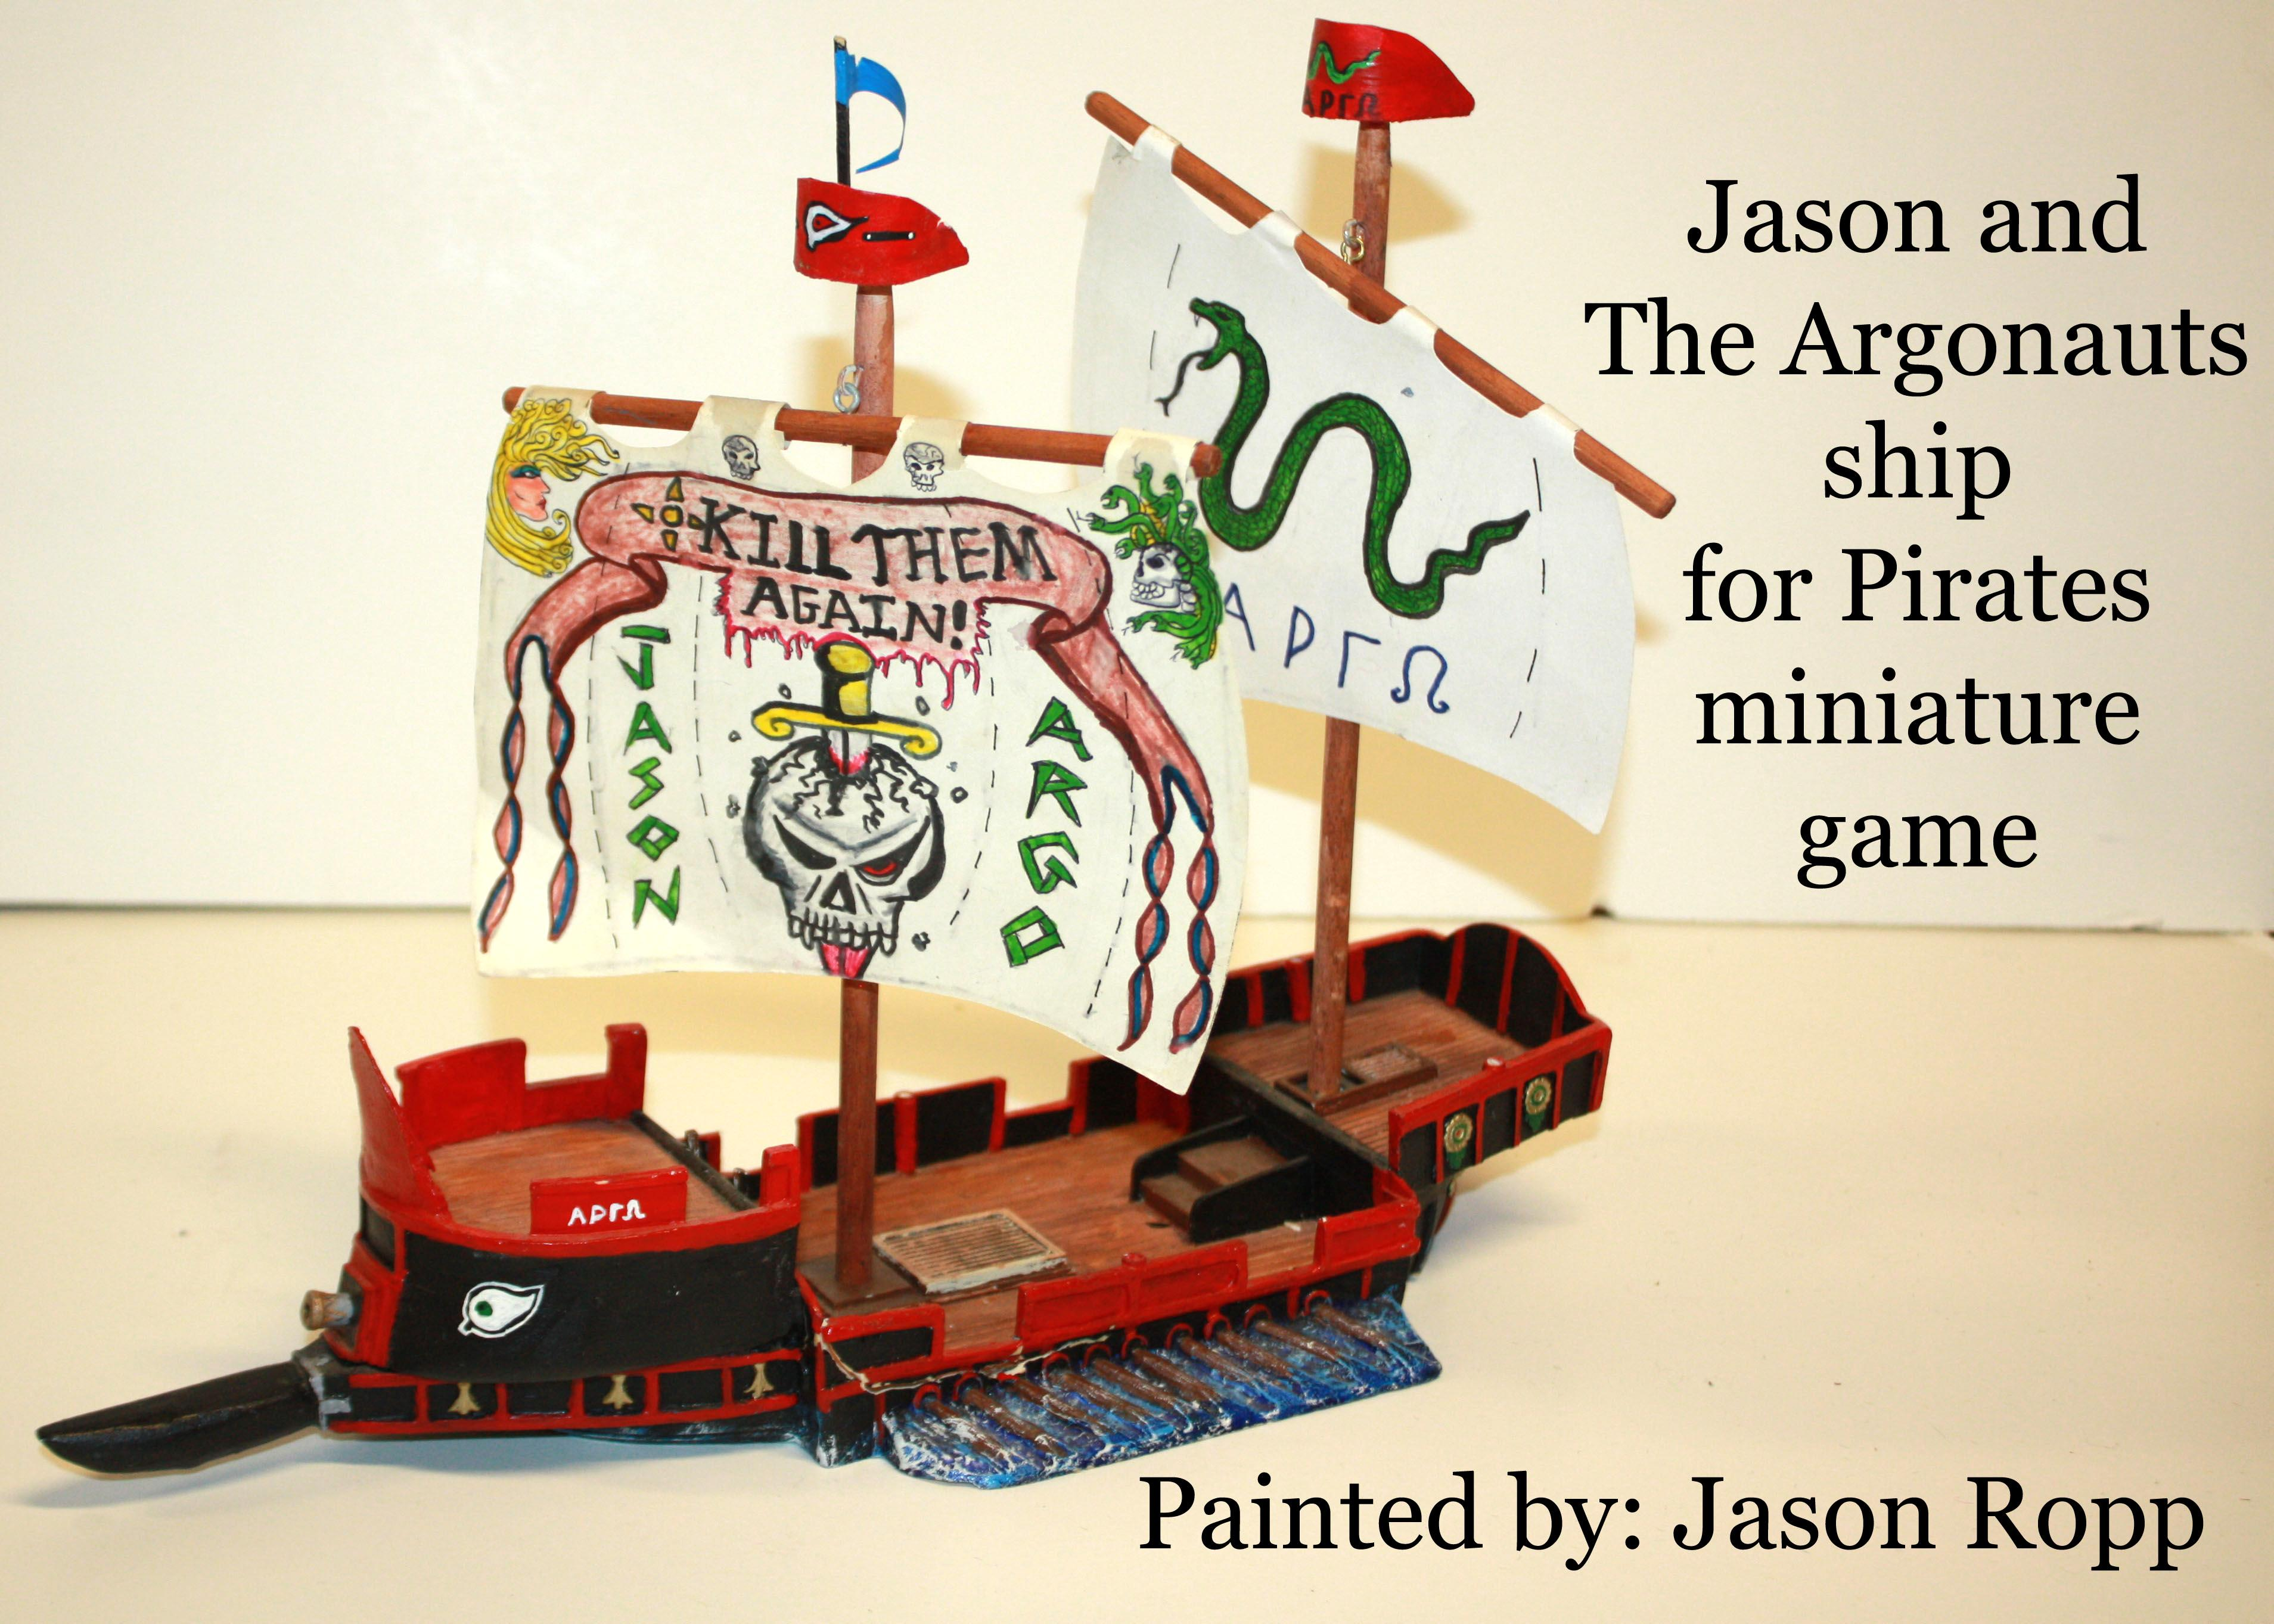 28mm, Argonauts, Jason, Miniature Game, Pirate, Pirates, Pirates! Ship, Sailor, War Games